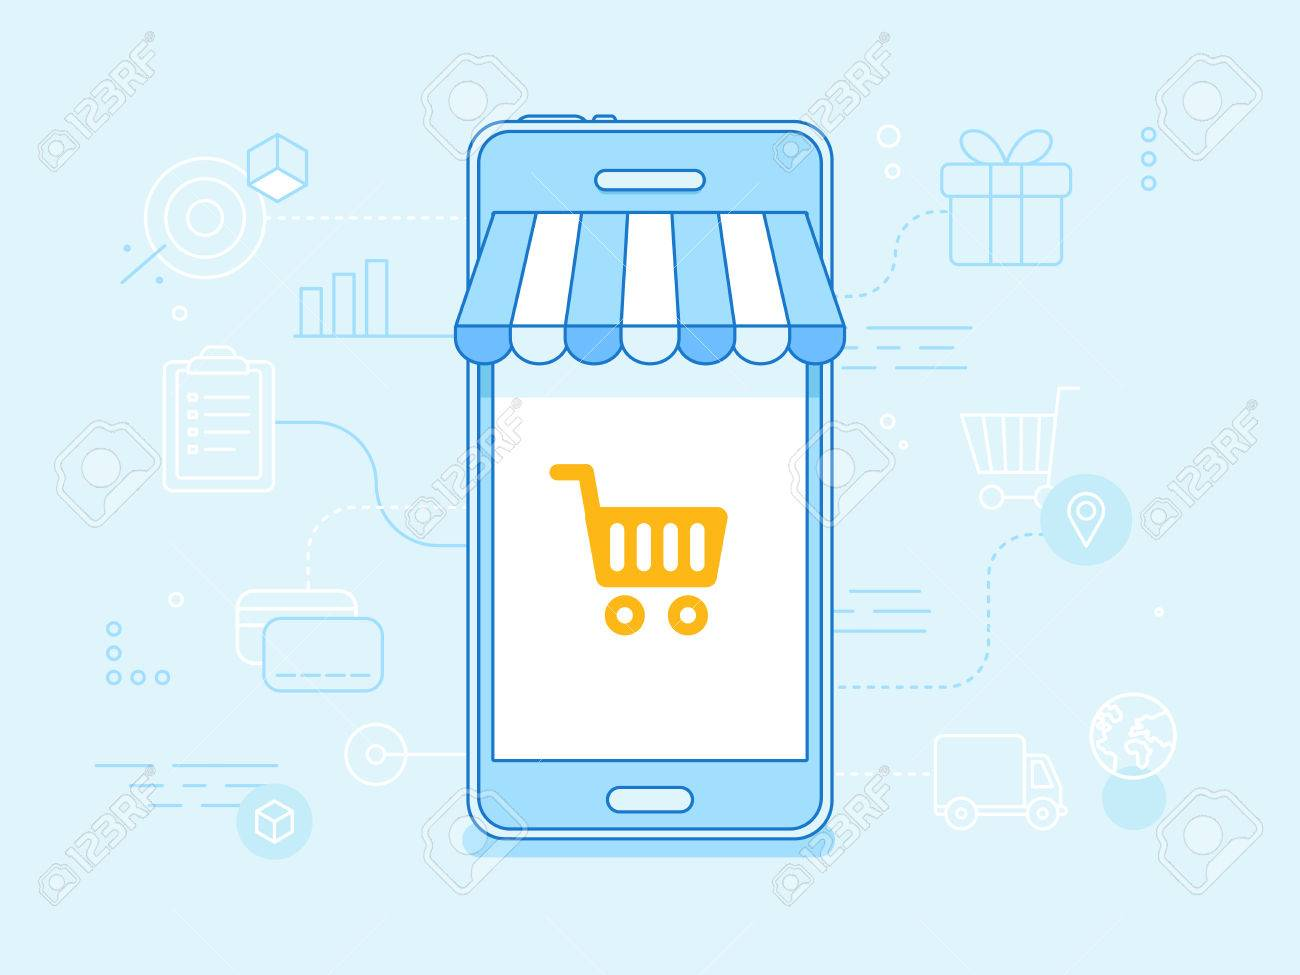 f624a513873 Vector - Vector flat linear illustration in blue colors - online shopping  concept - mobile phone with striped awnings and shopping cart on the  touchscreen